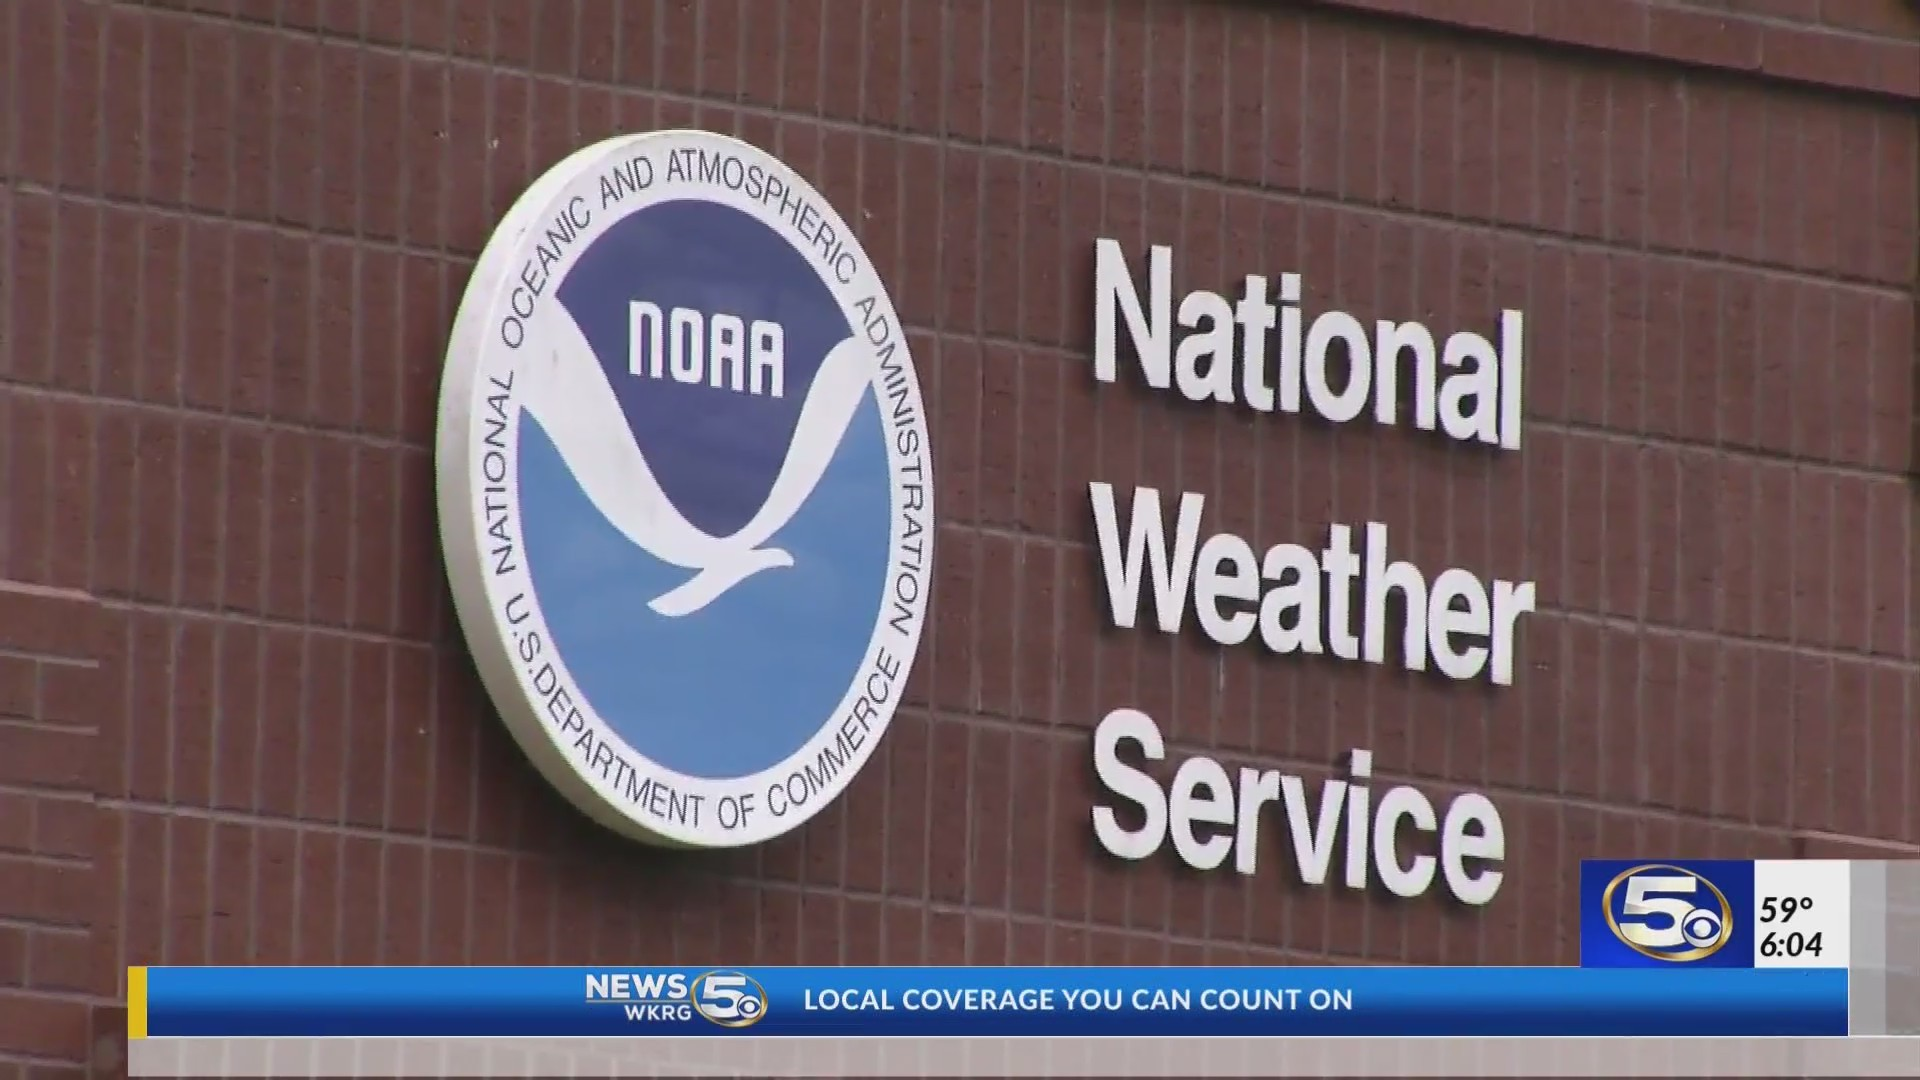 VIDEO: The shutdown and our local weather service office